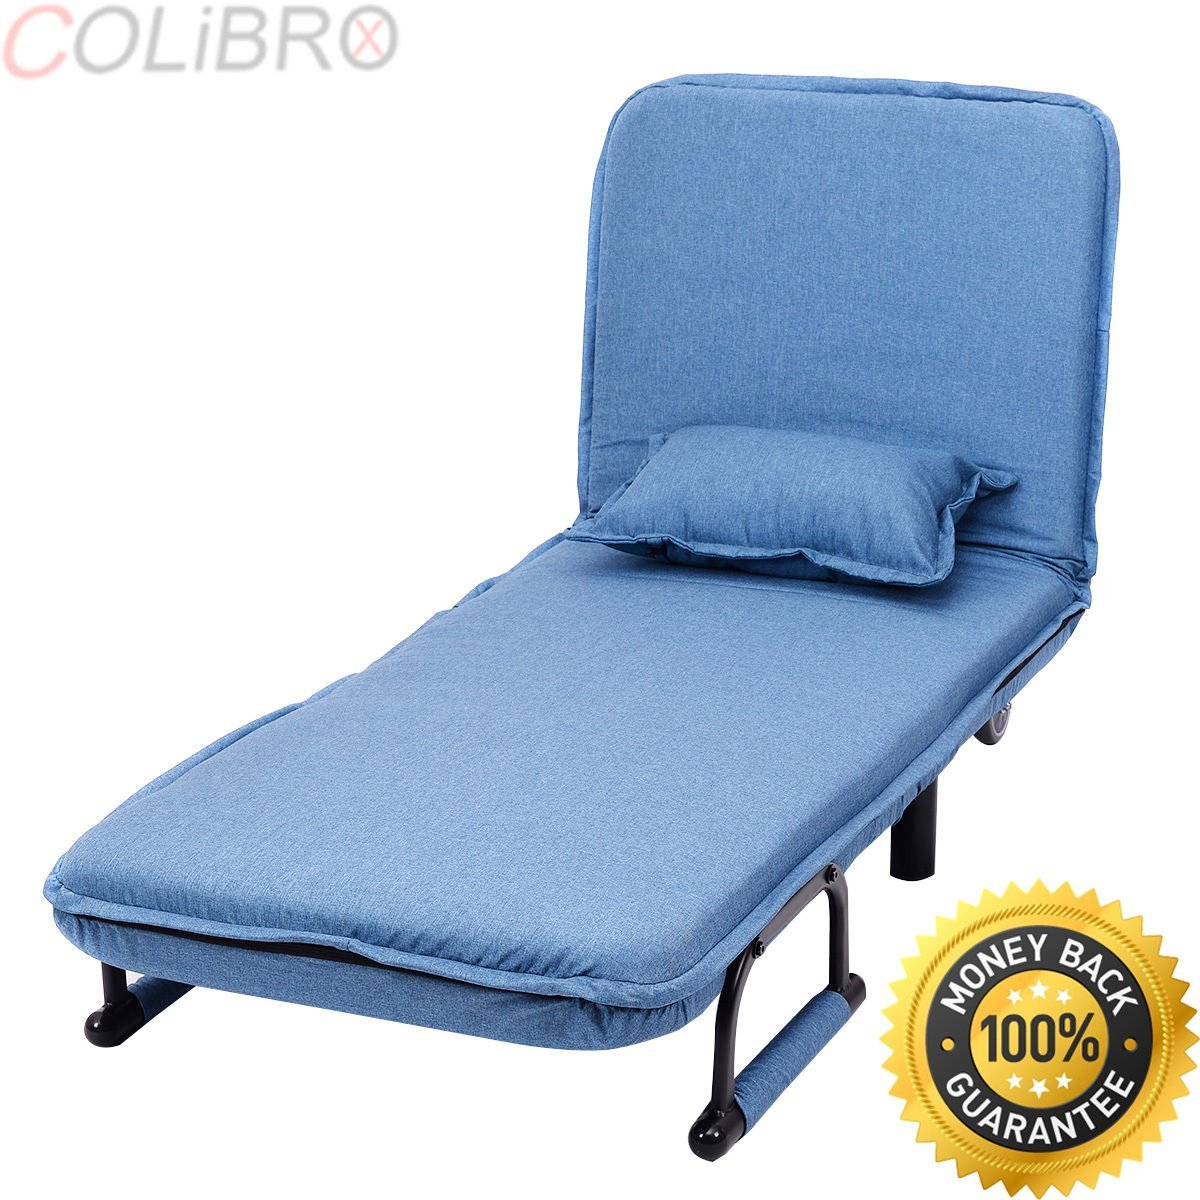 Cheap Single Bed Chair Sleeper Find Single Bed Chair Sleeper Deals On Line At Alibaba Com